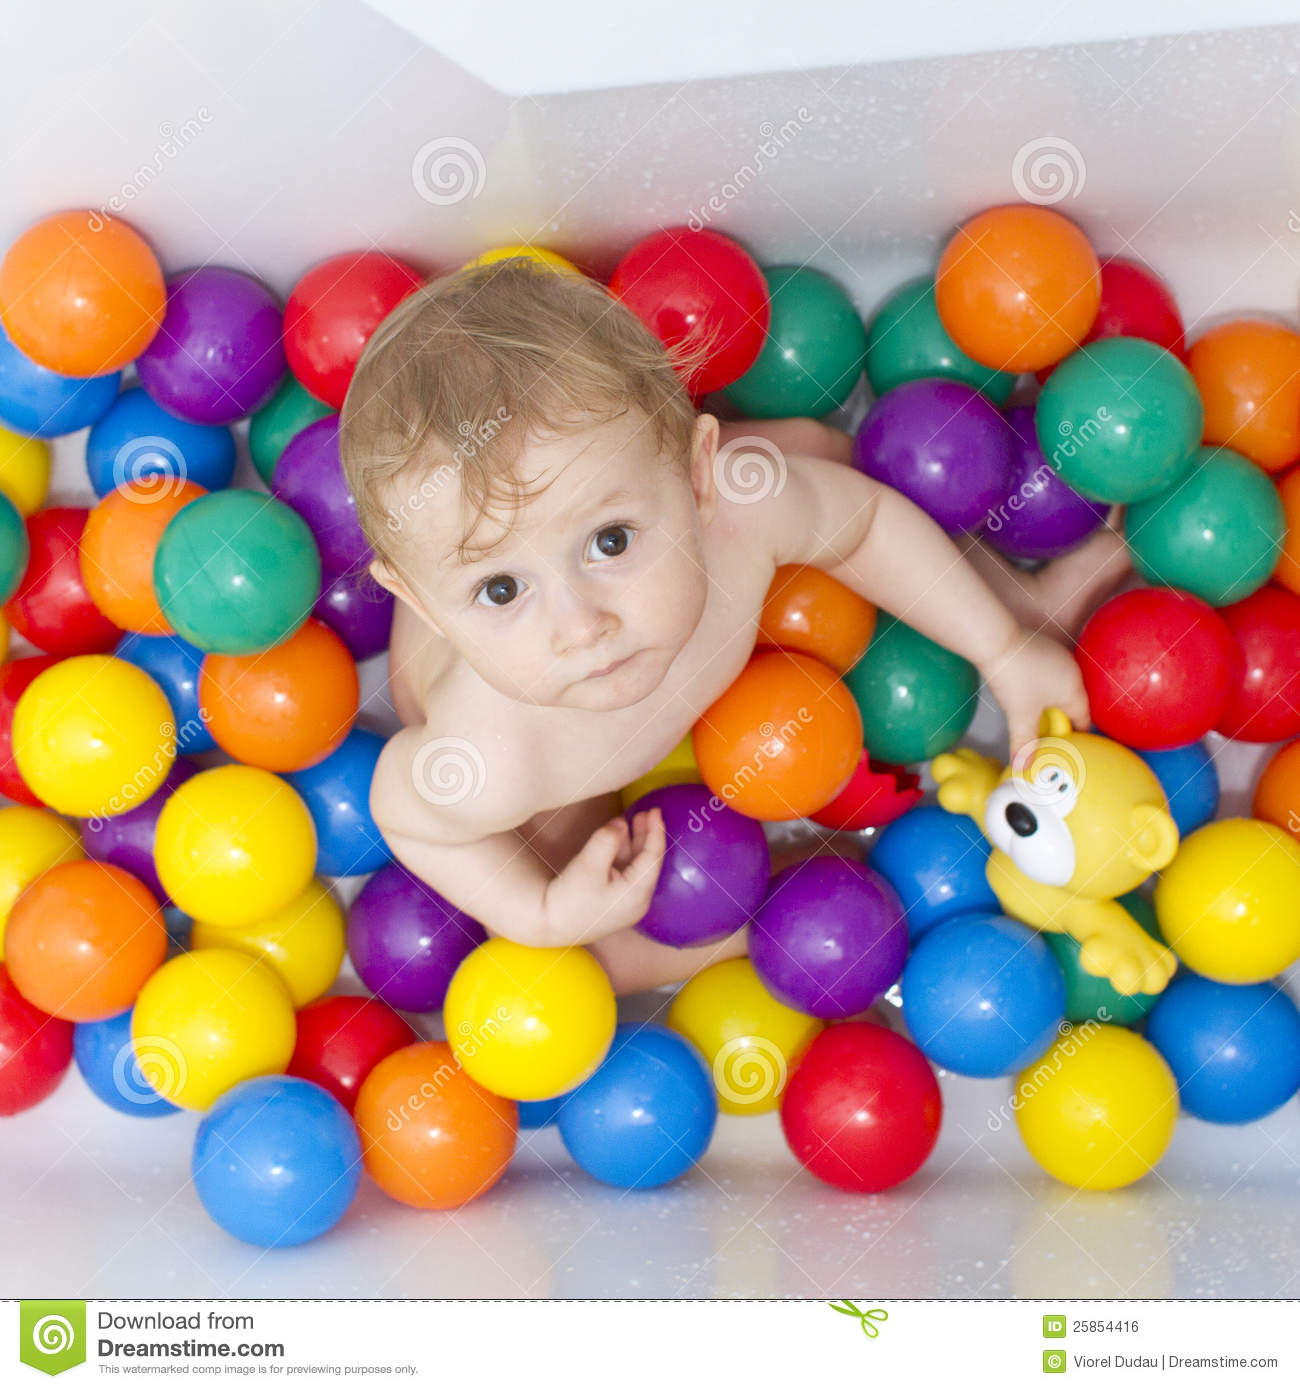 Baby Balls Stock Photos, Images, & Pictures - 2,938 Images